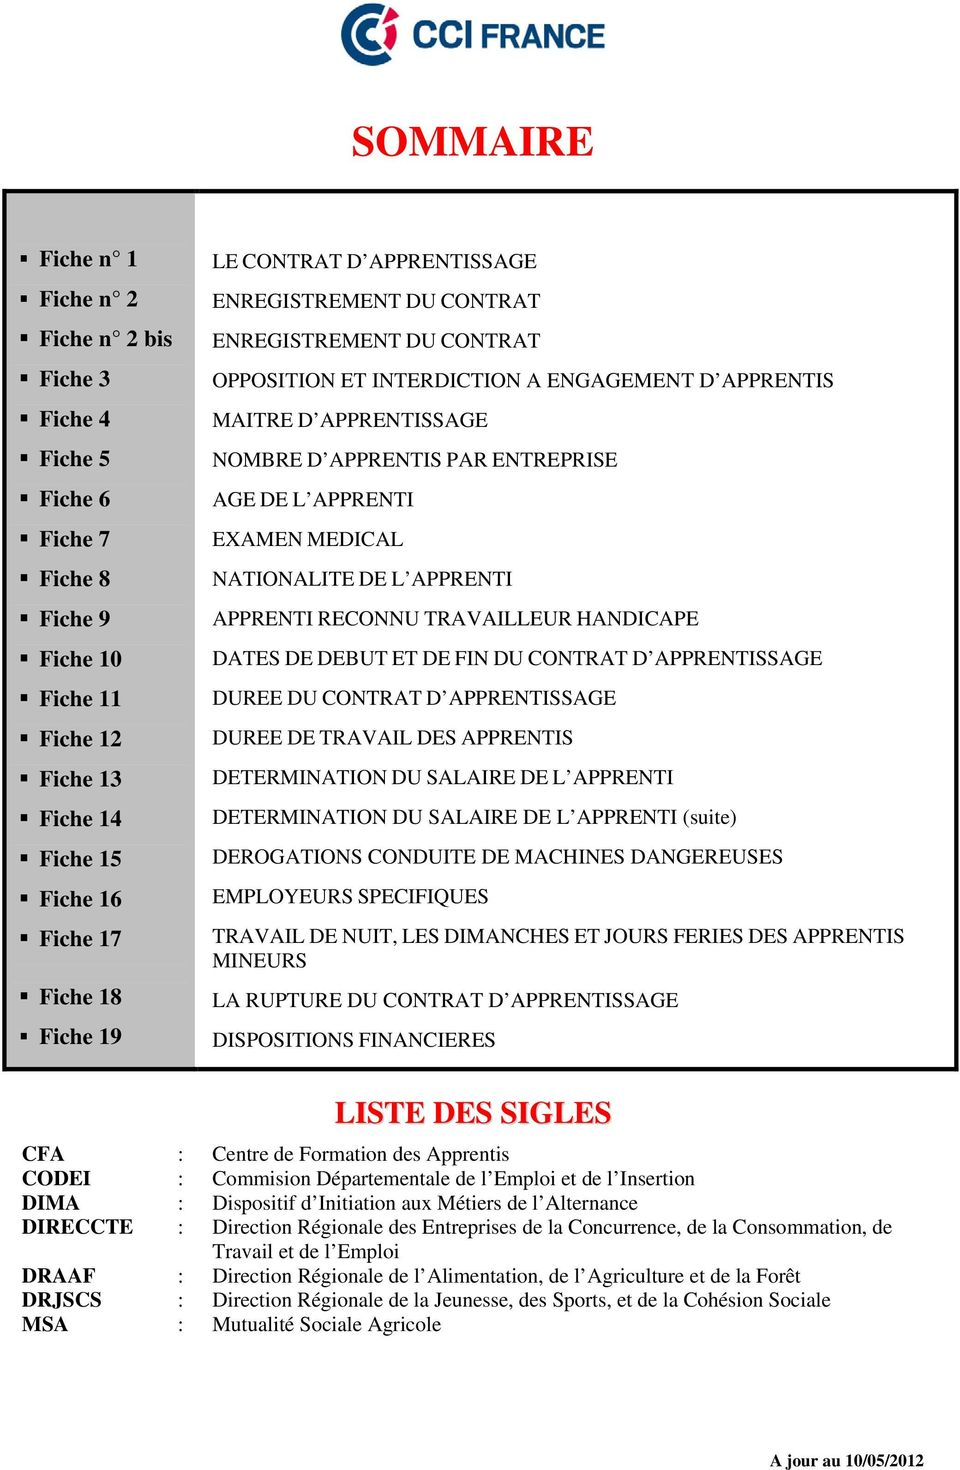 EXAMEN MEDICAL NATIONALITE DE L APPRENTI APPRENTI RECONNU TRAVAILLEUR HANDICAPE DATES DE DEBUT ET DE FIN DU CONTRAT D APPRENTISSAGE DUREE DU CONTRAT D APPRENTISSAGE DUREE DE TRAVAIL DES APPRENTIS